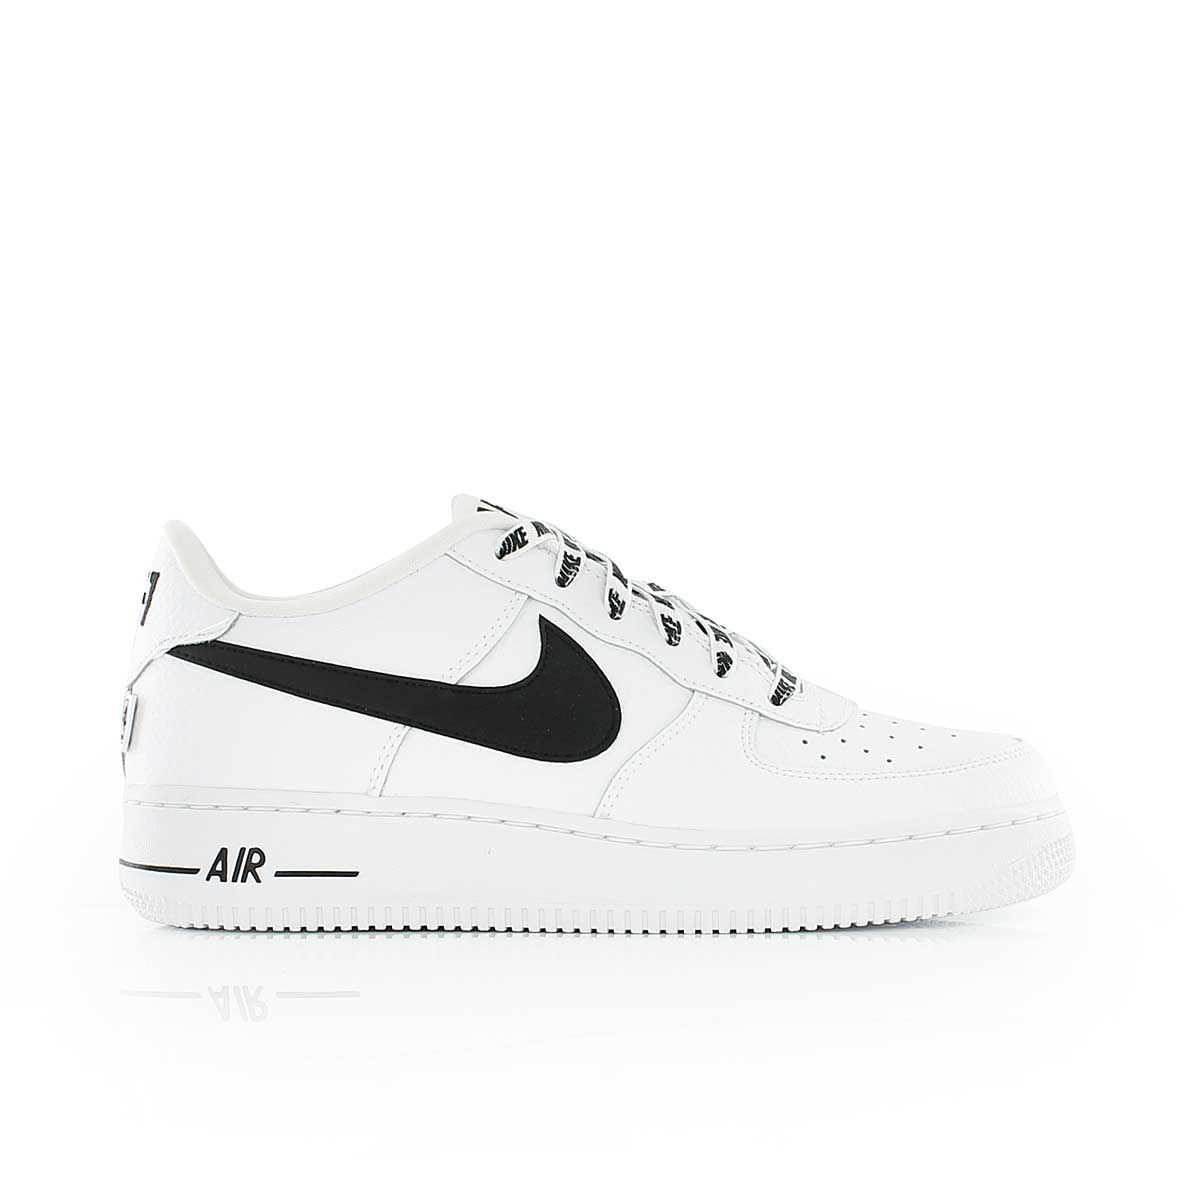 nike AIR FORCE 1 LV8 (GS) | Getränke | Sneakers nike